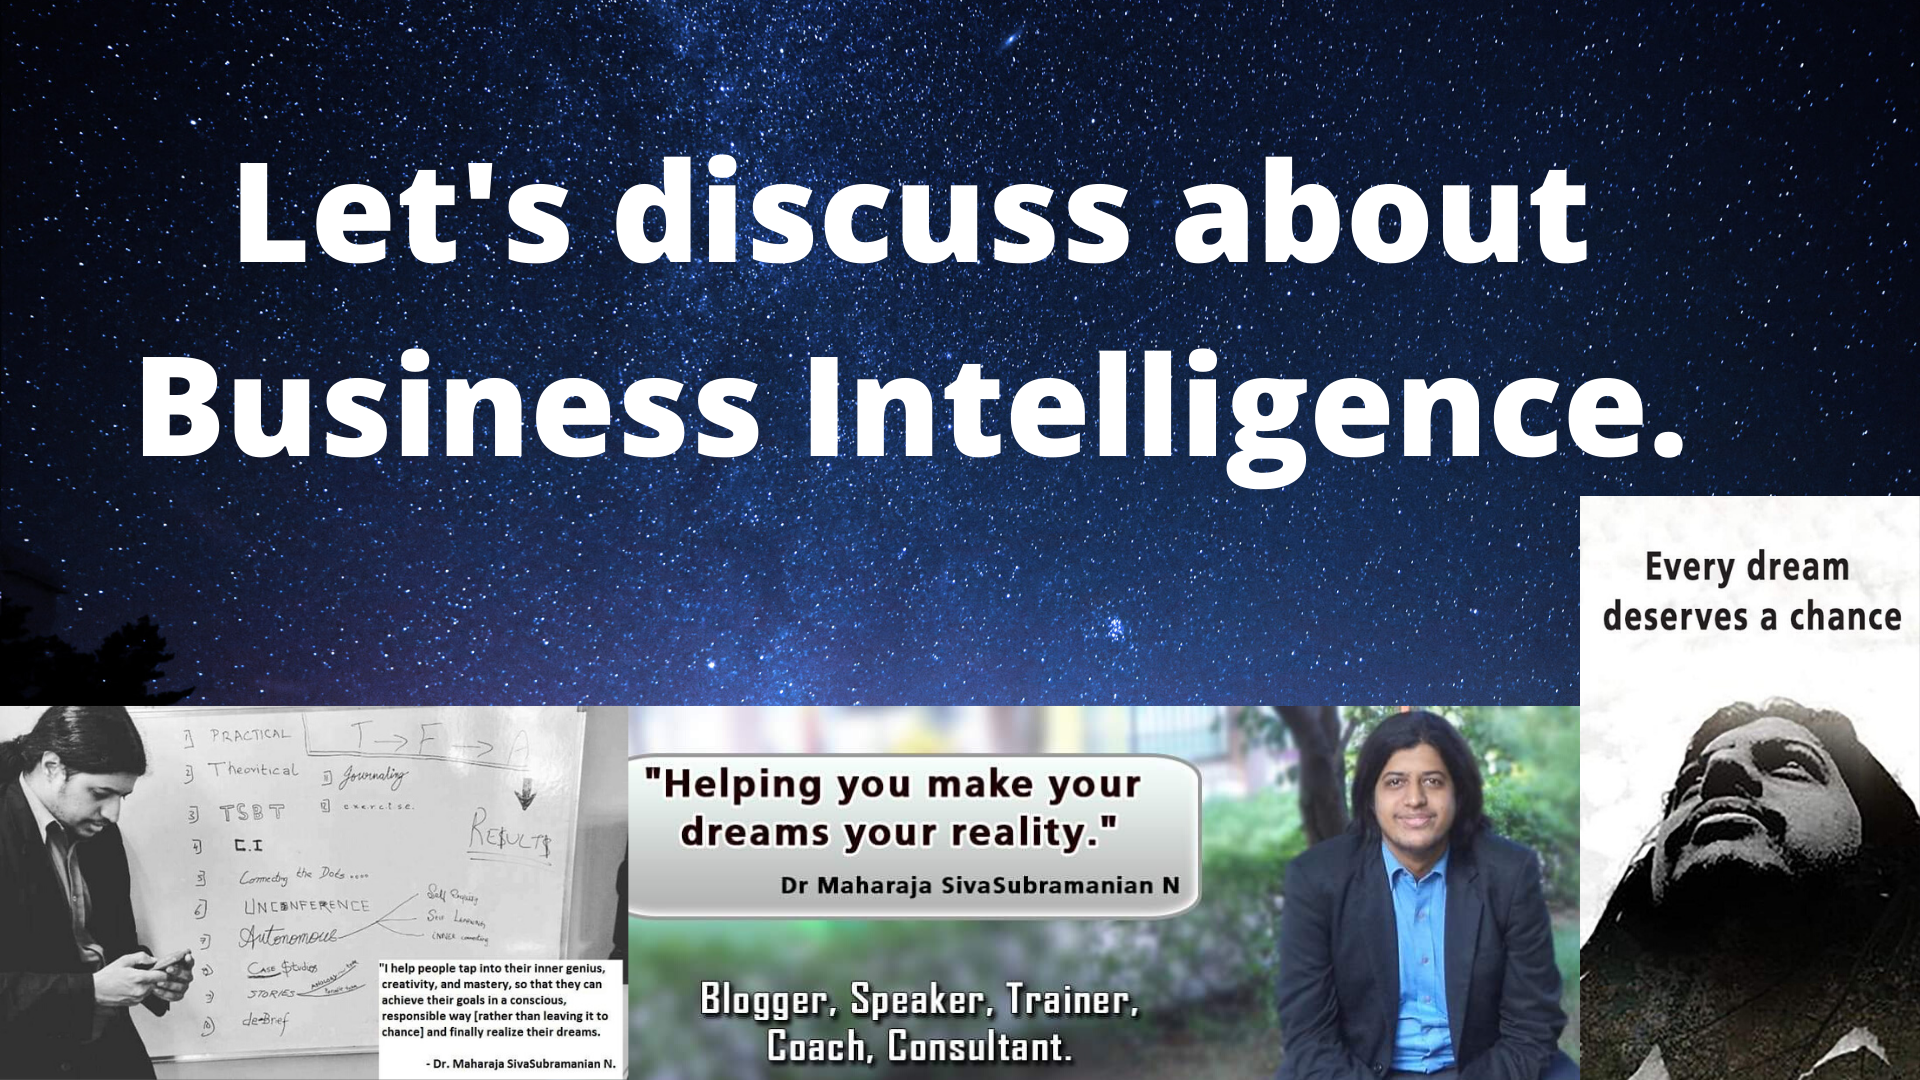 Business Intelligence. Let's discuss about Business Intelligence.